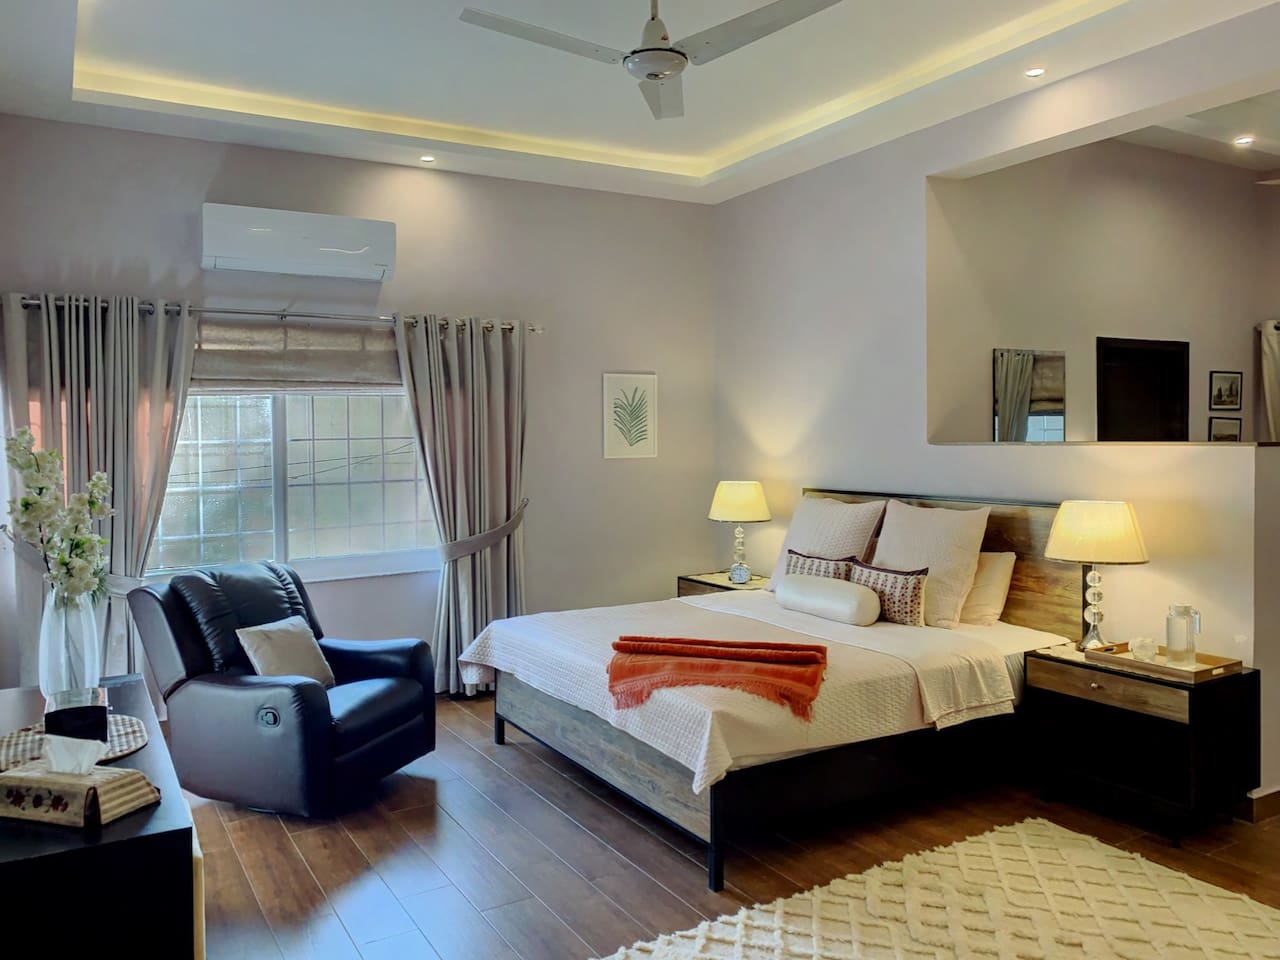 Master bedroom with king-size bed,  recliner, changing area.